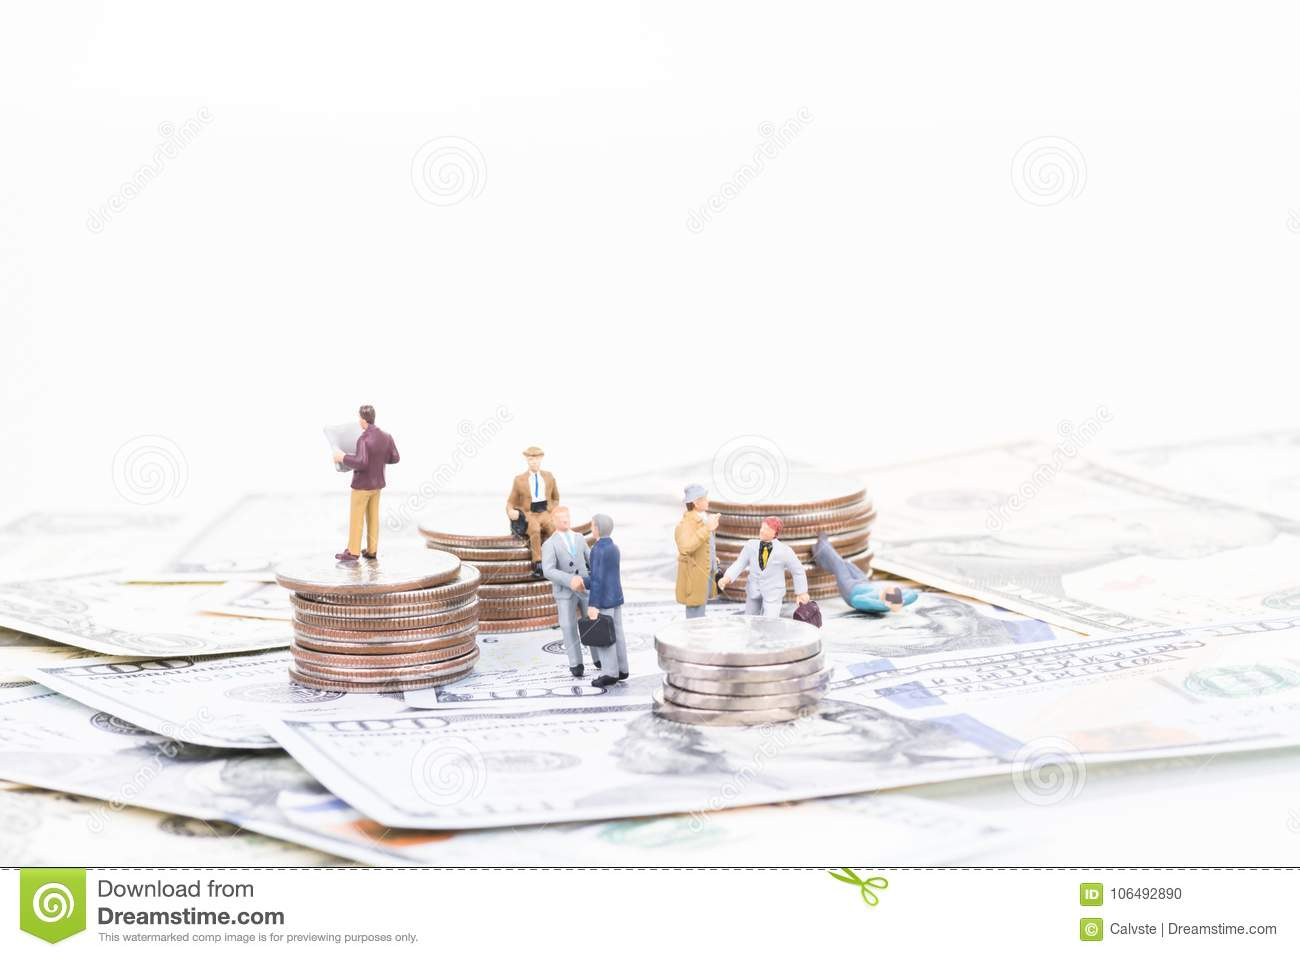 Miniature business people on US banknotes and coins